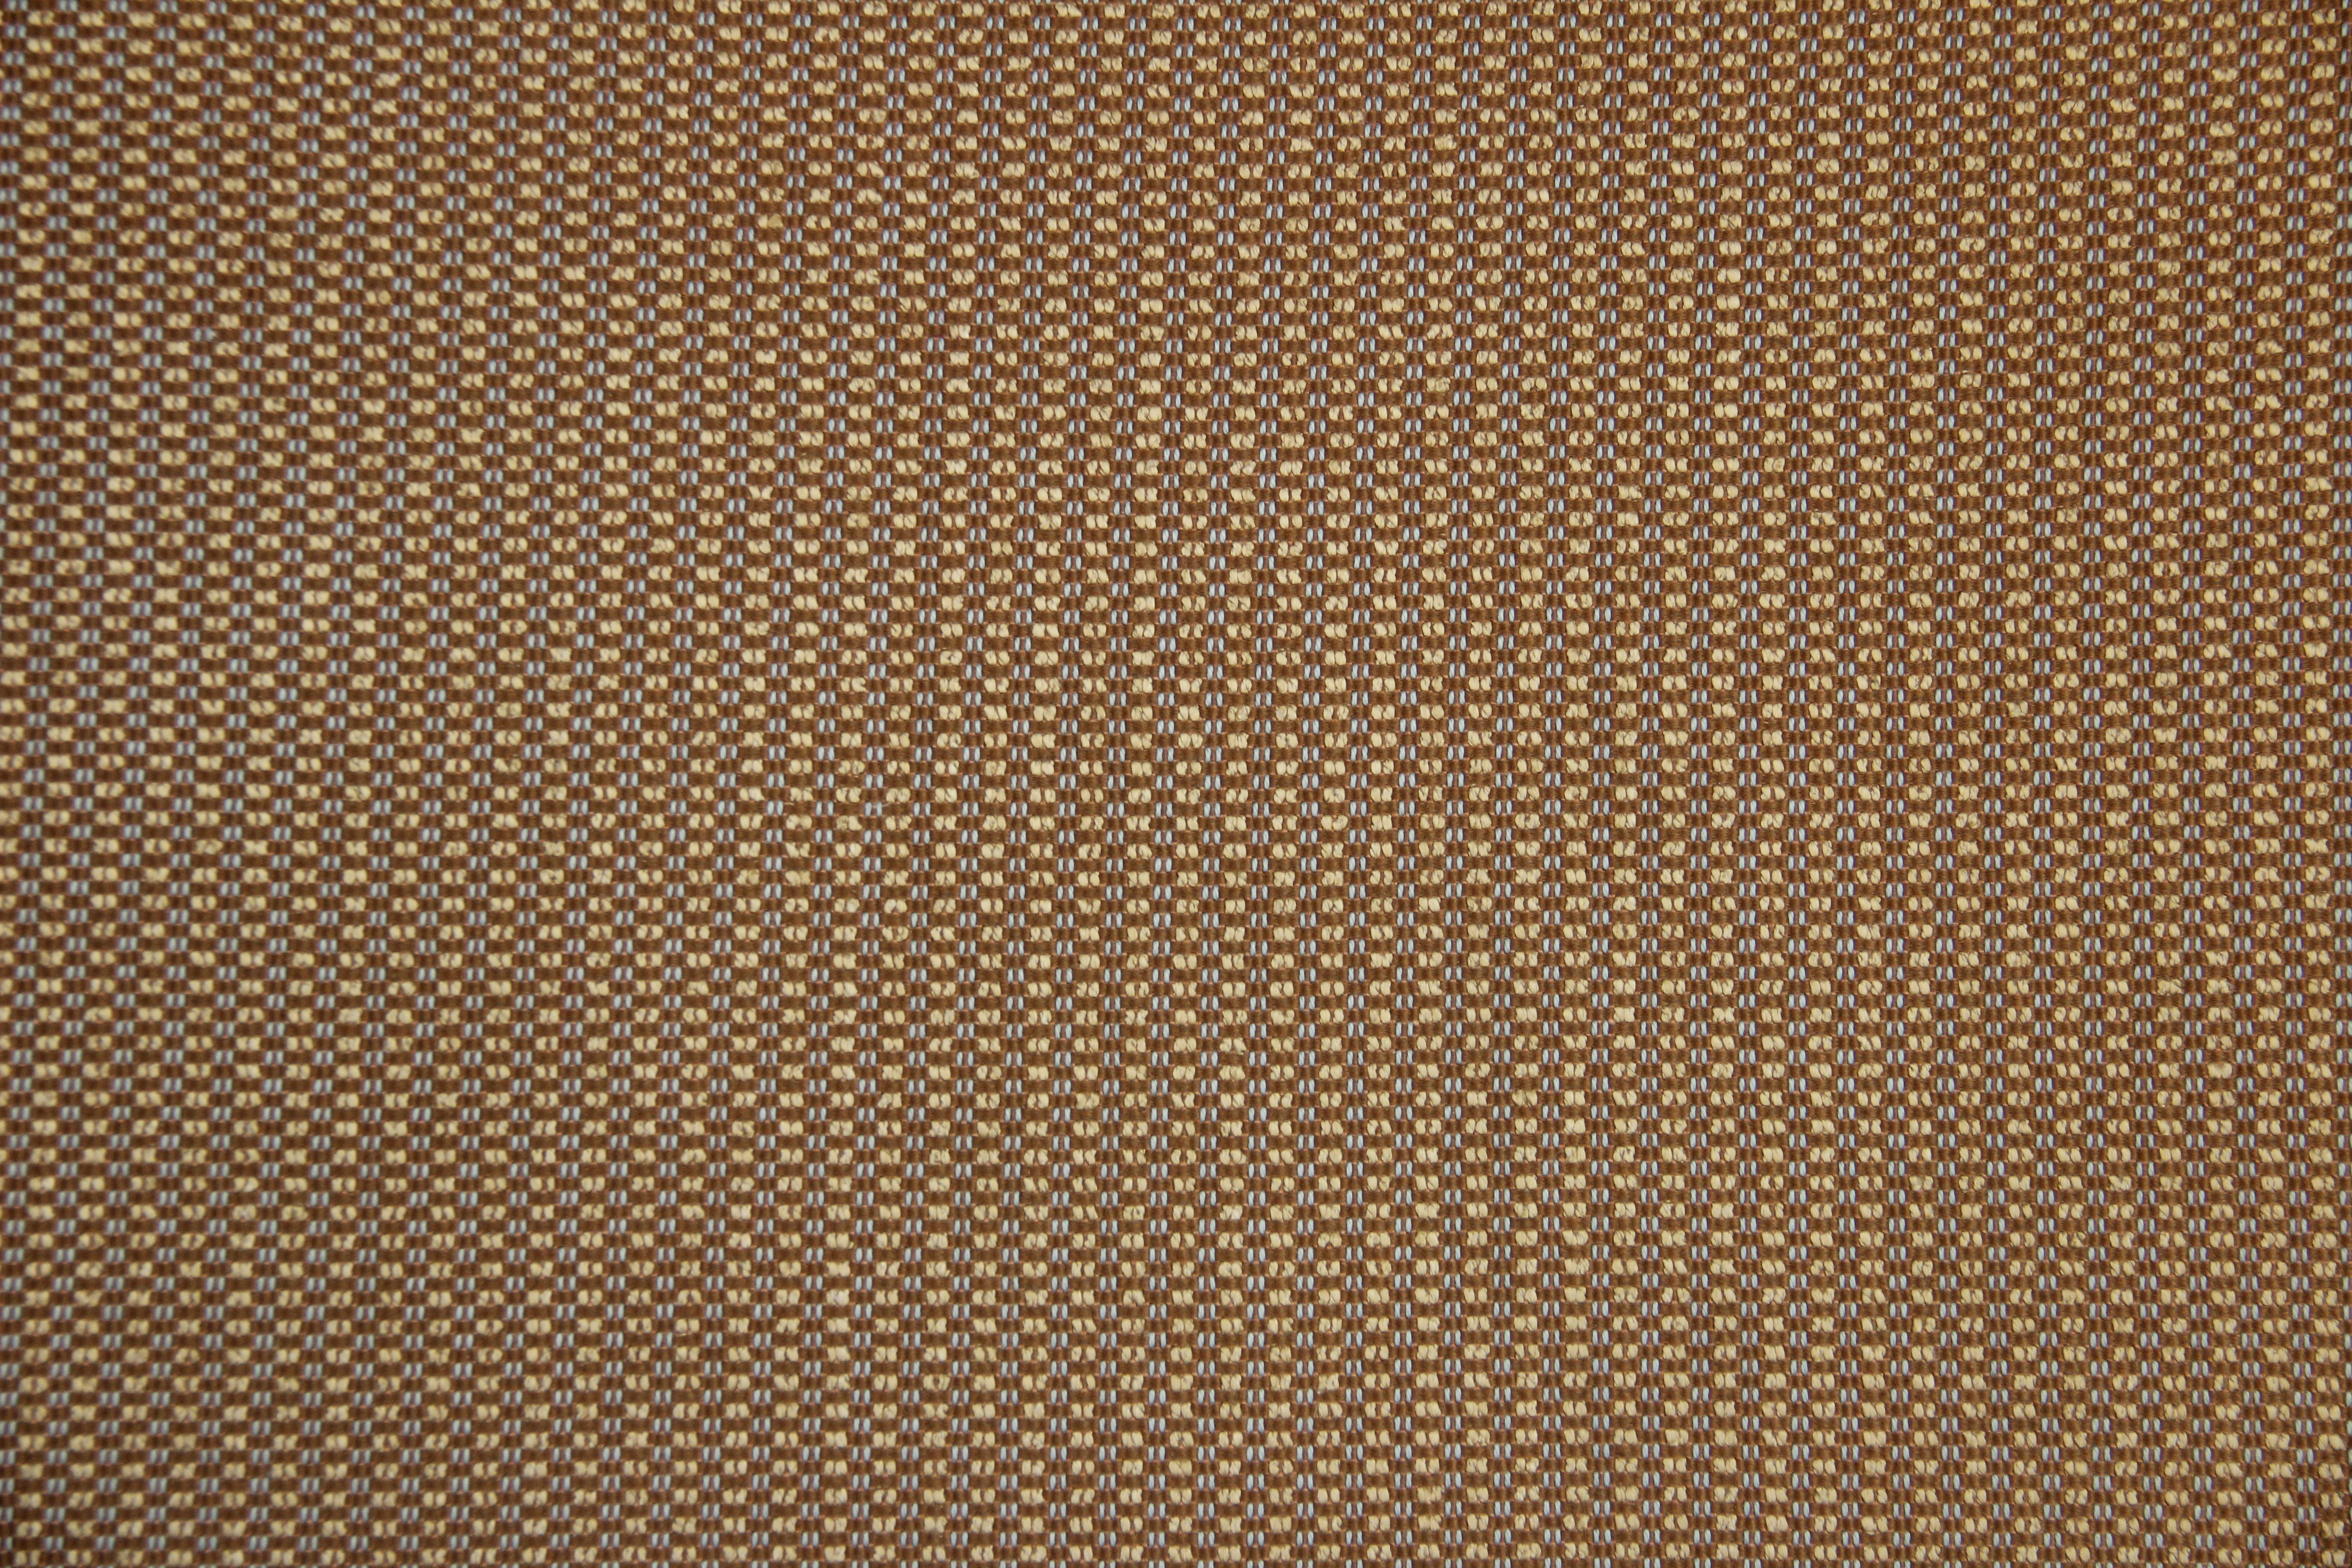 Chair Fabric Texture 2 by ScooterboyEx221 on DeviantArt